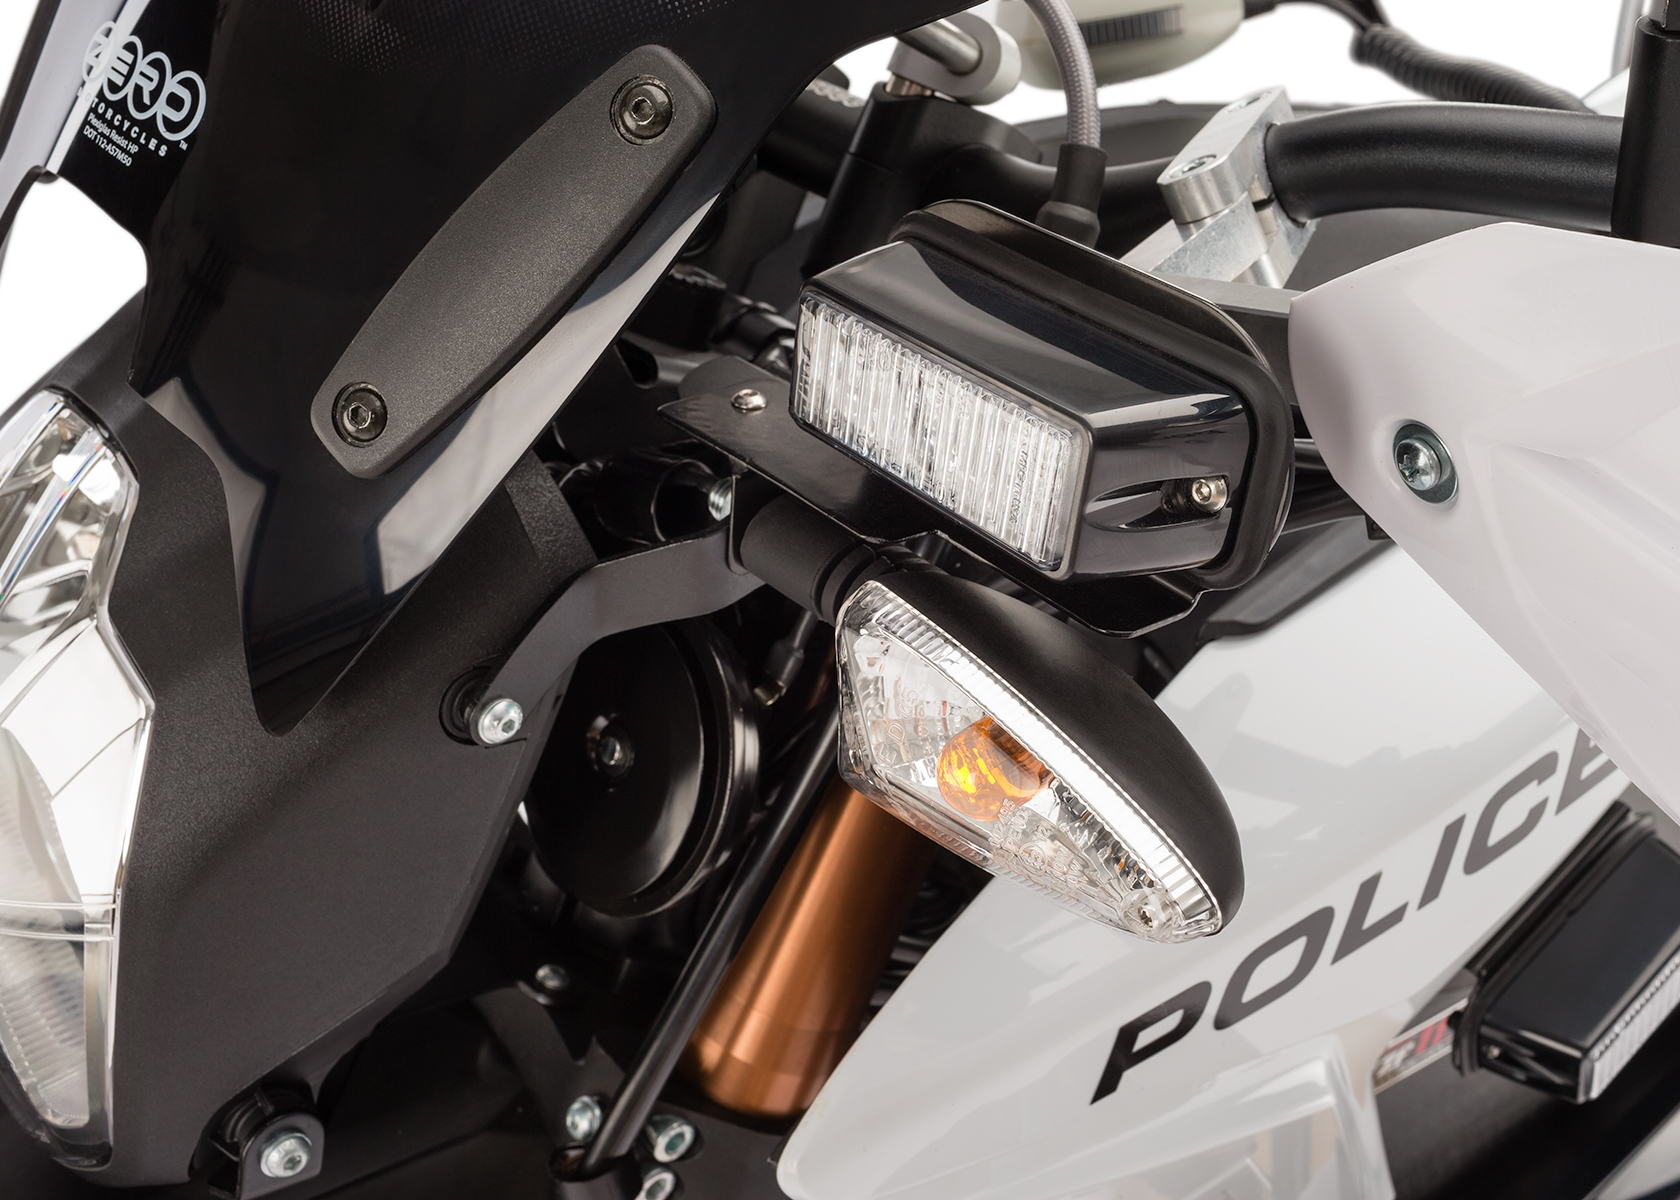 2013 Zero Police Electric Motorcycle: Front Lights